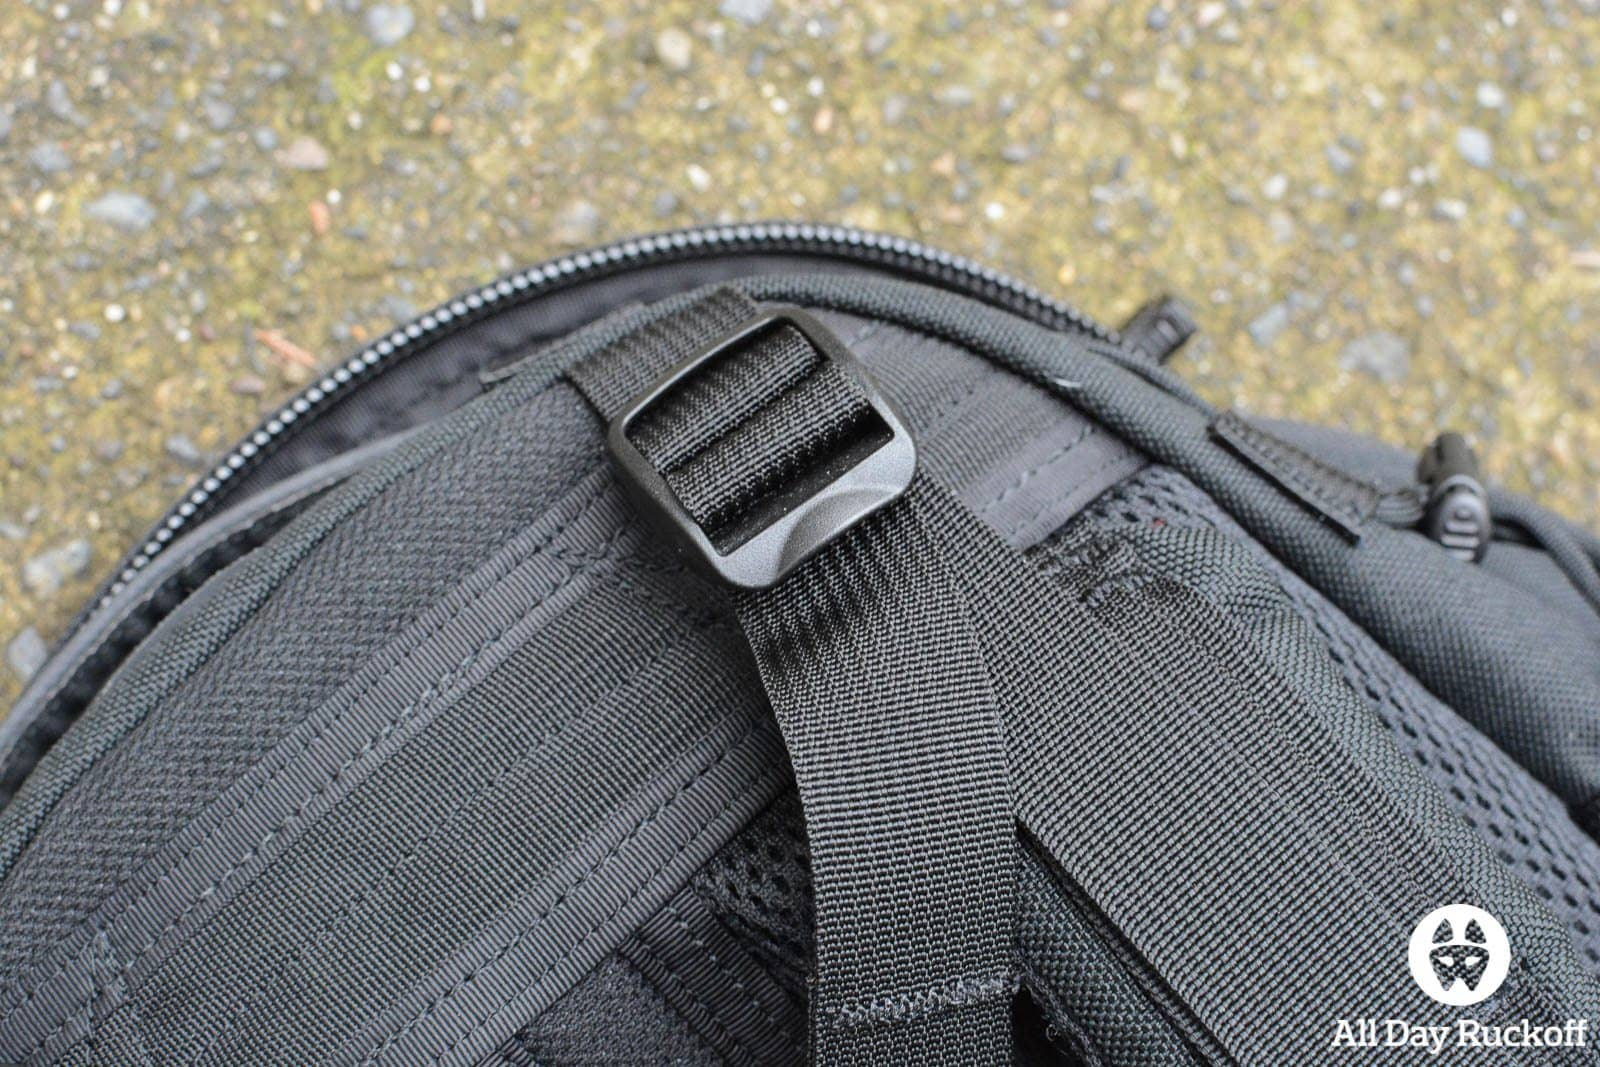 Triple Aught Design Litespeed Review - Shoulder Straps Top